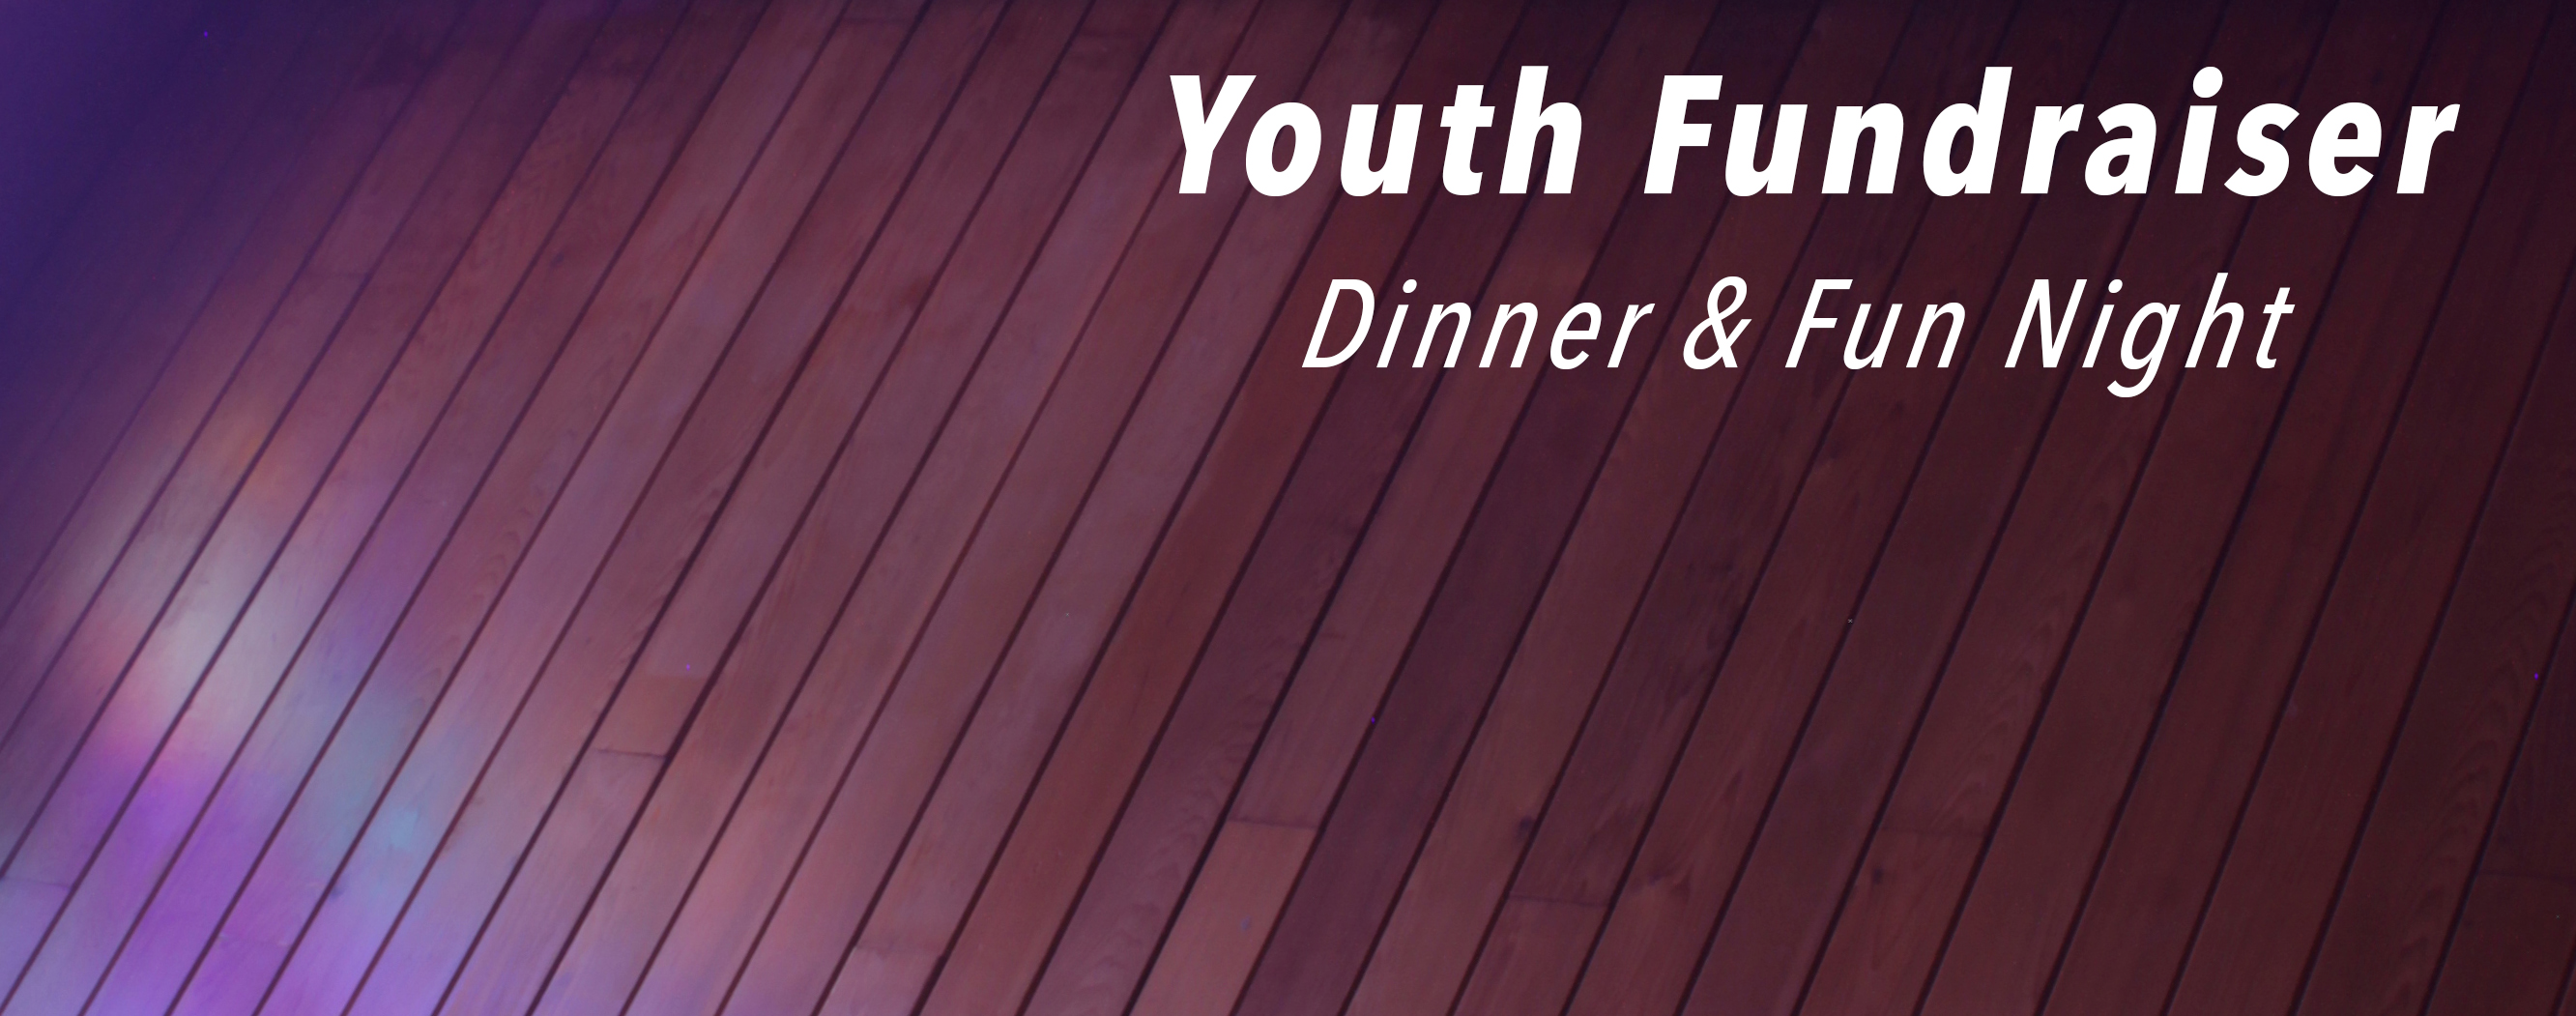 Youth Fundraiser Dinner & Fun Night